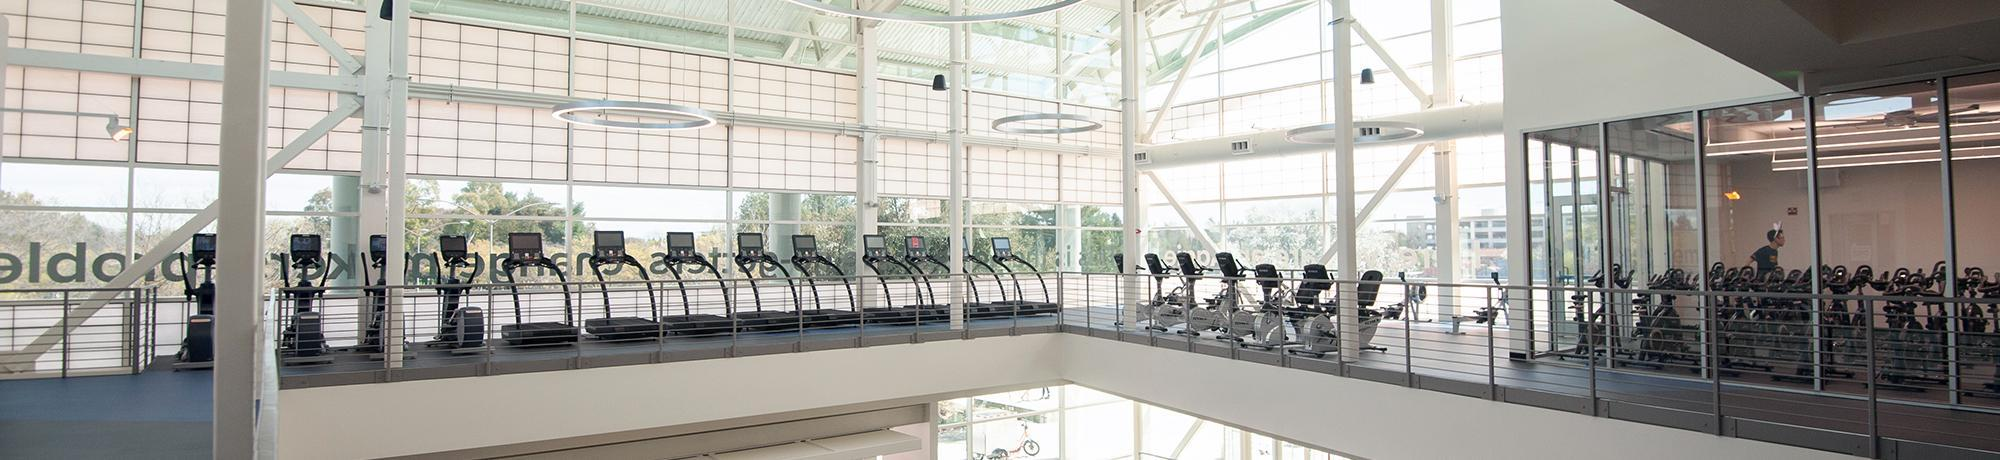 Treadmills in the ARC